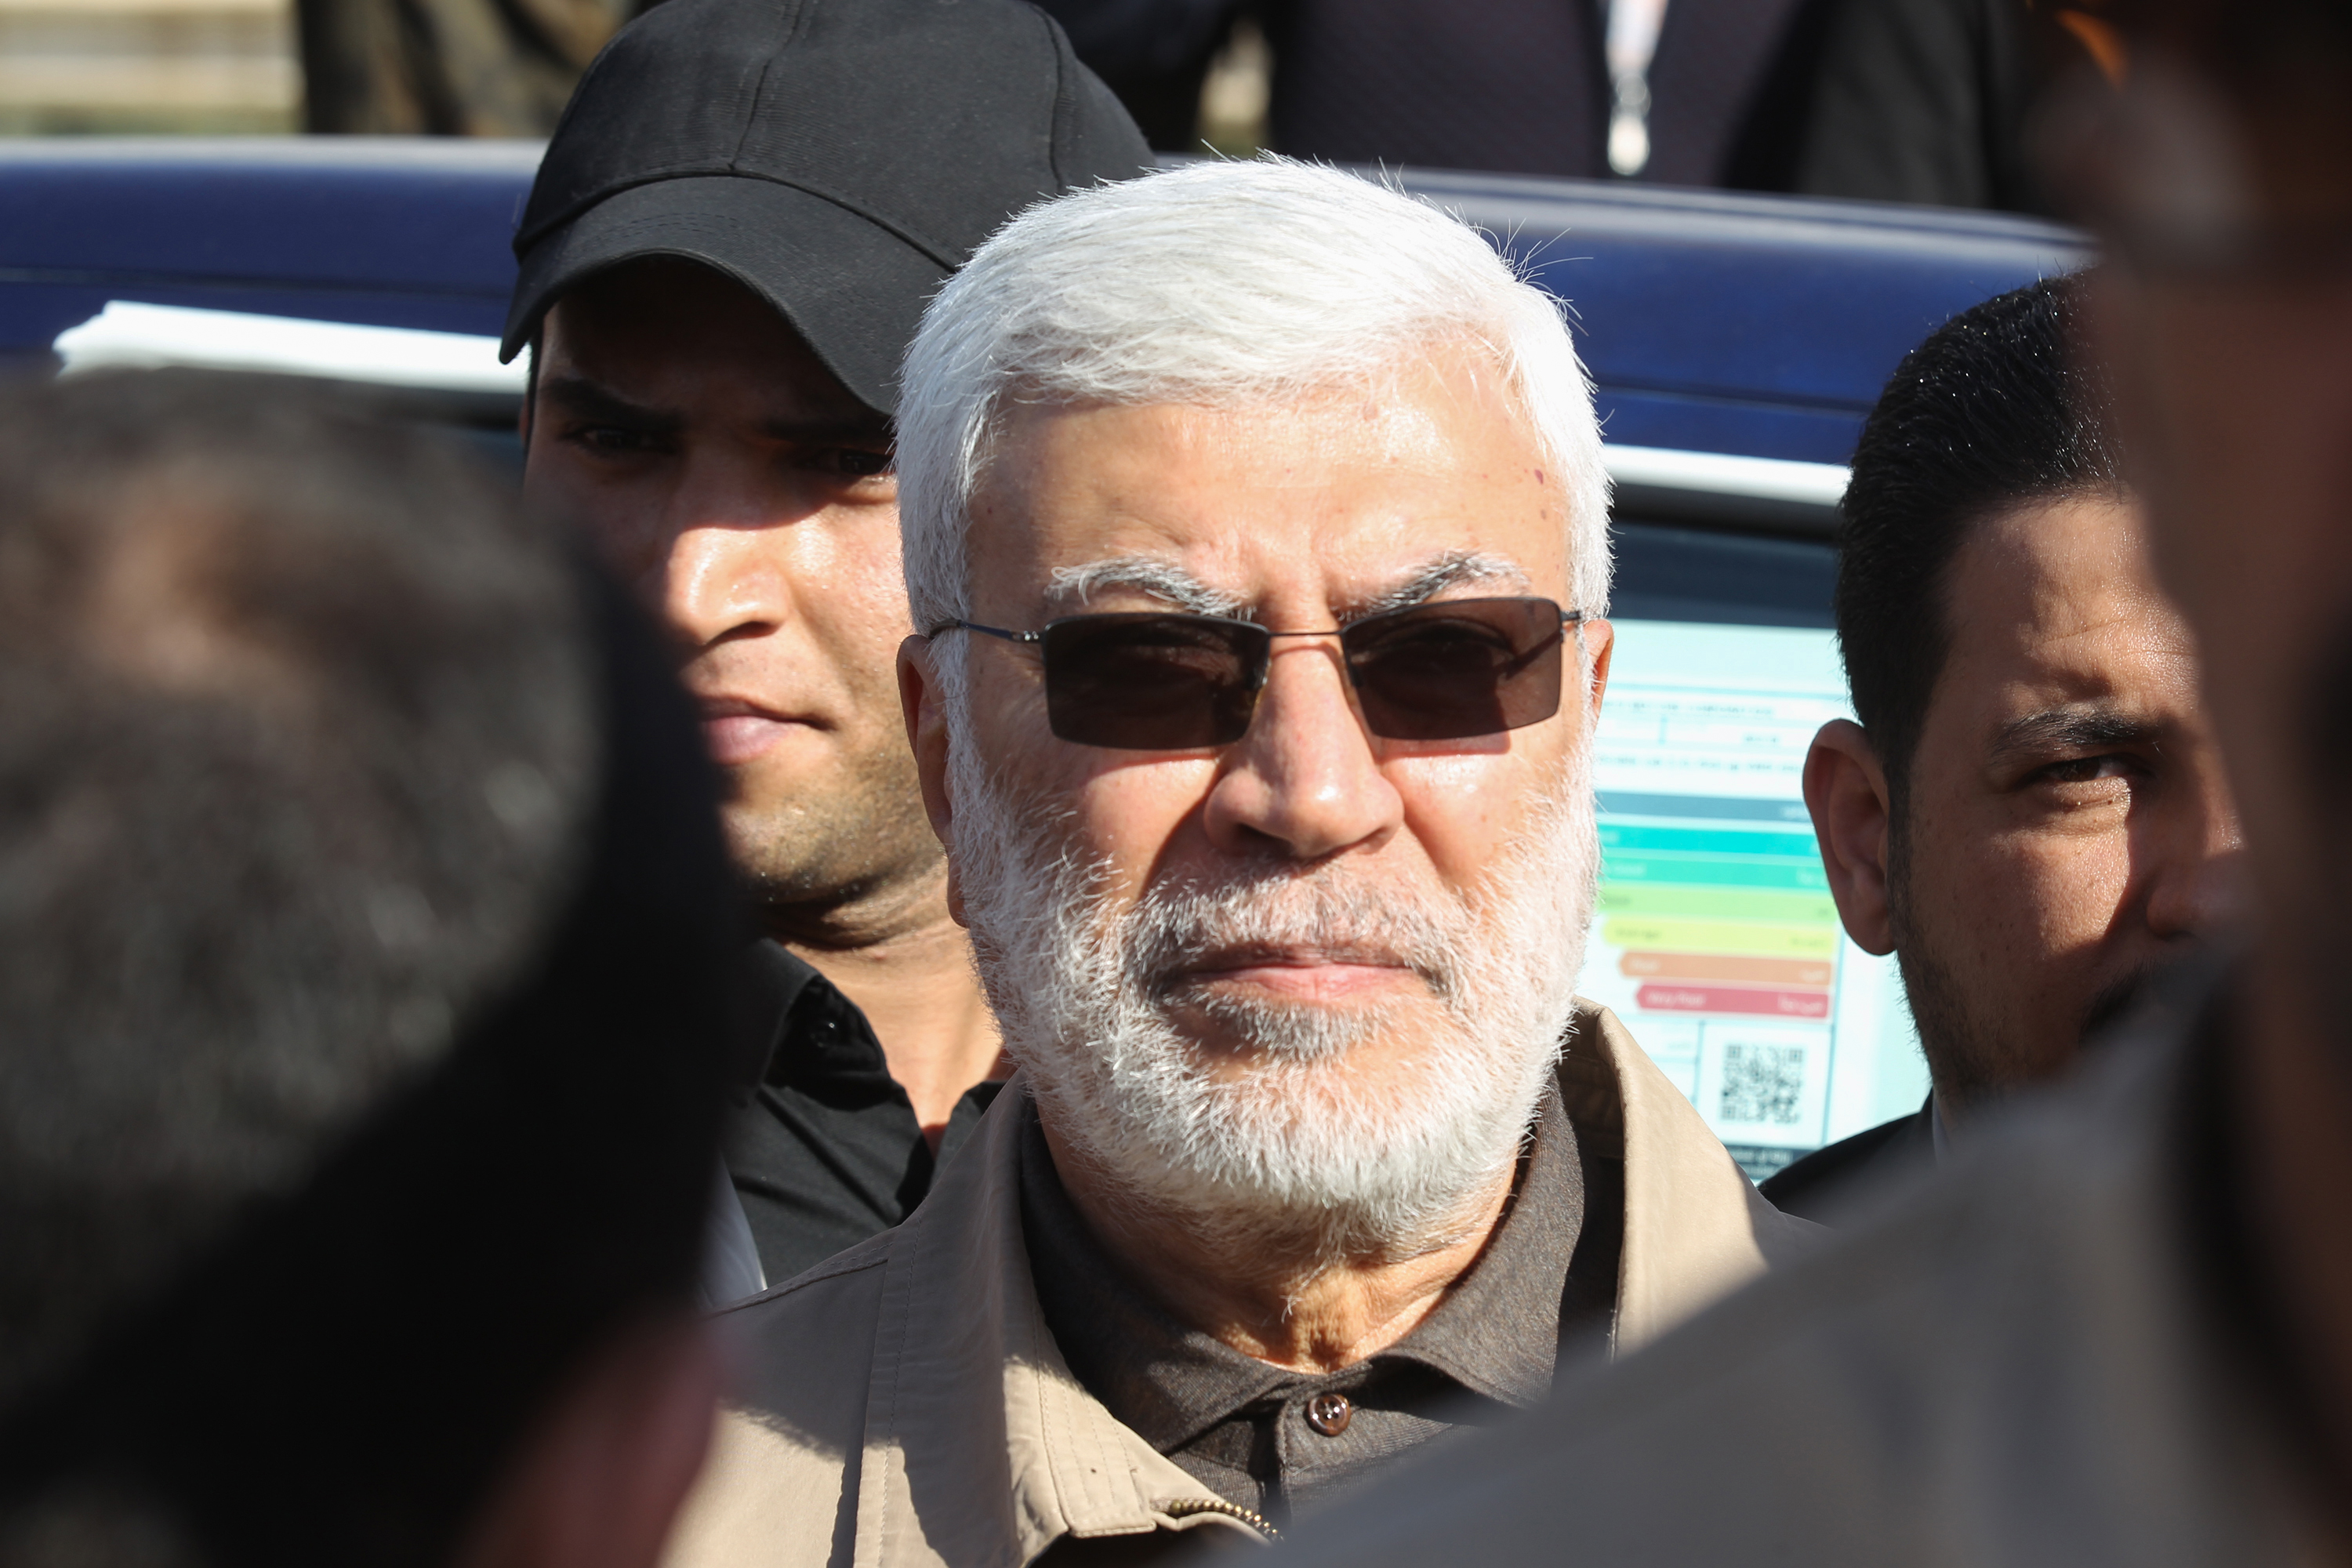 Abu Mahdi al-Muhandis, a commander in the Popular Mobilization Forces.